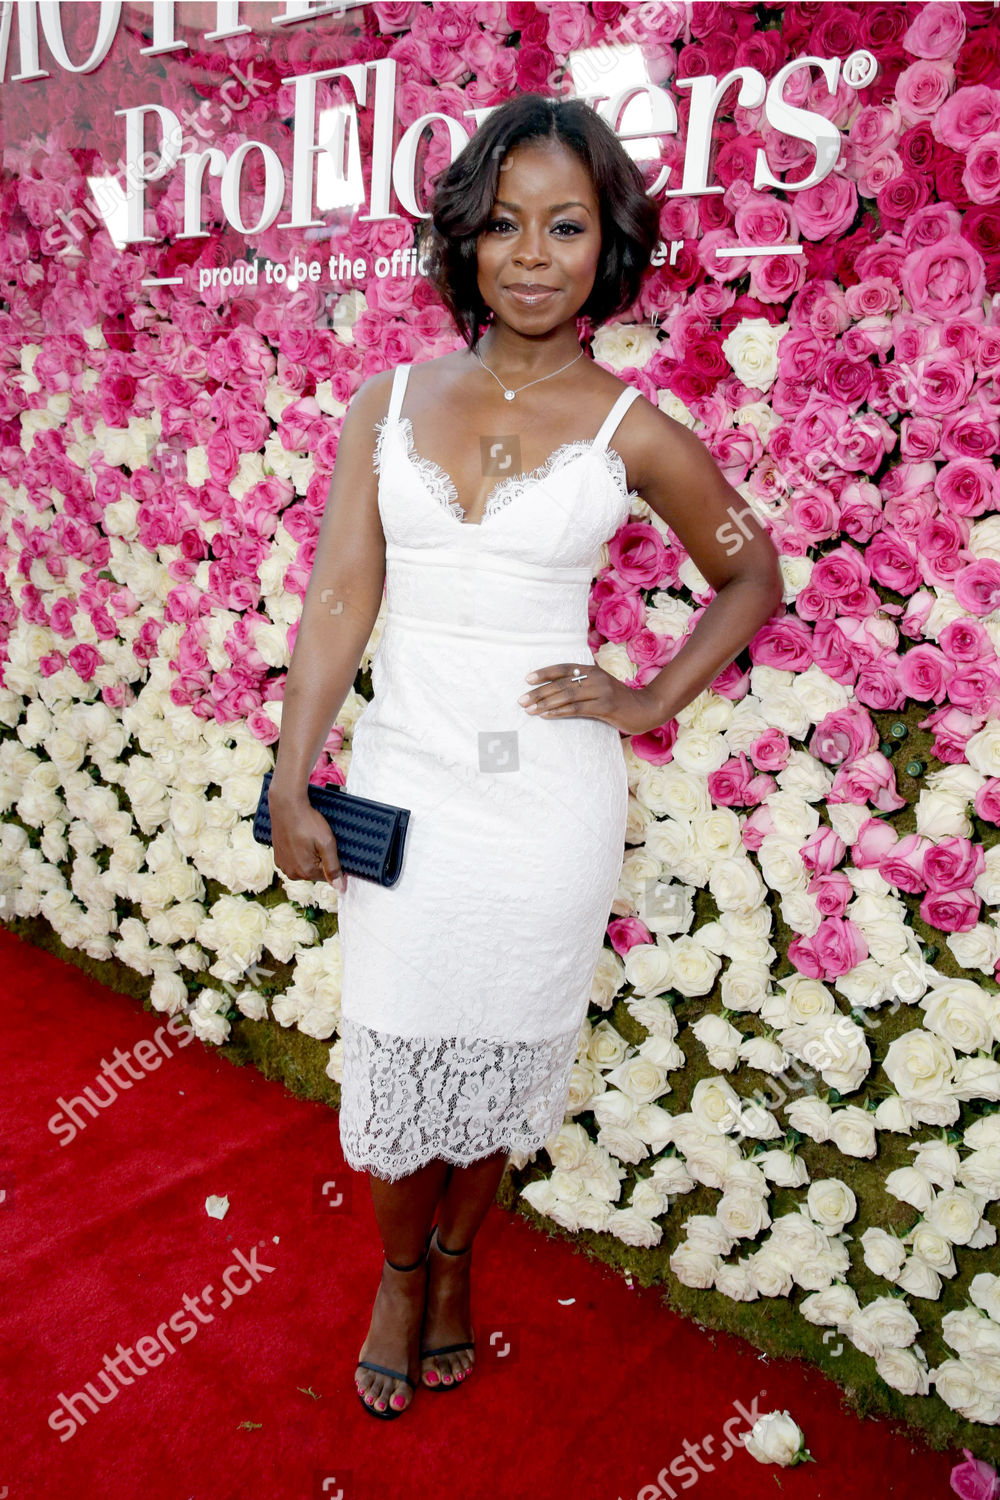 Erica Tazel Seen Open Road Presents World Editorial Stock Photo Stock Image Shutterstock Want to see more posts tagged #erica tazel? 2